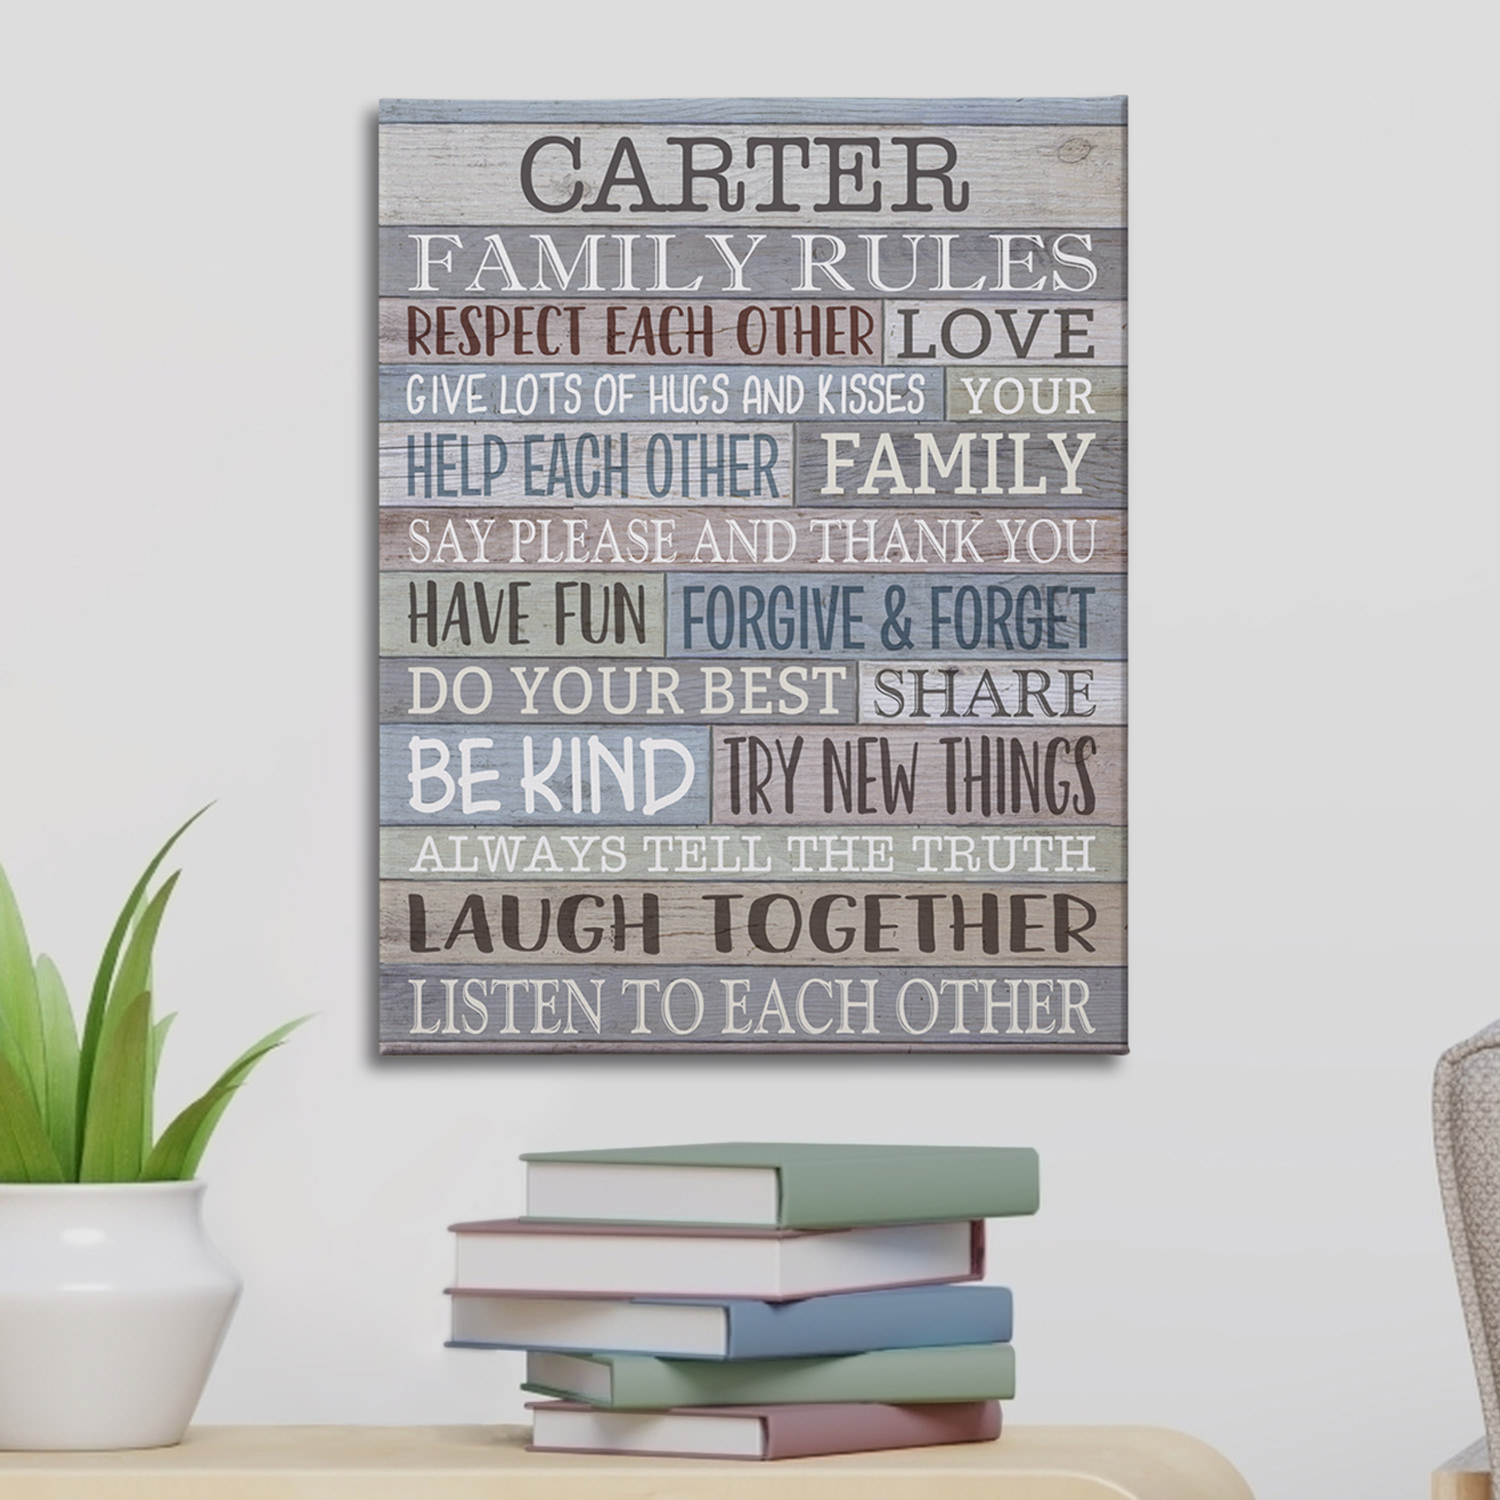 Personalized Rustic Family Rules Canvas - Available in 3 Sizes